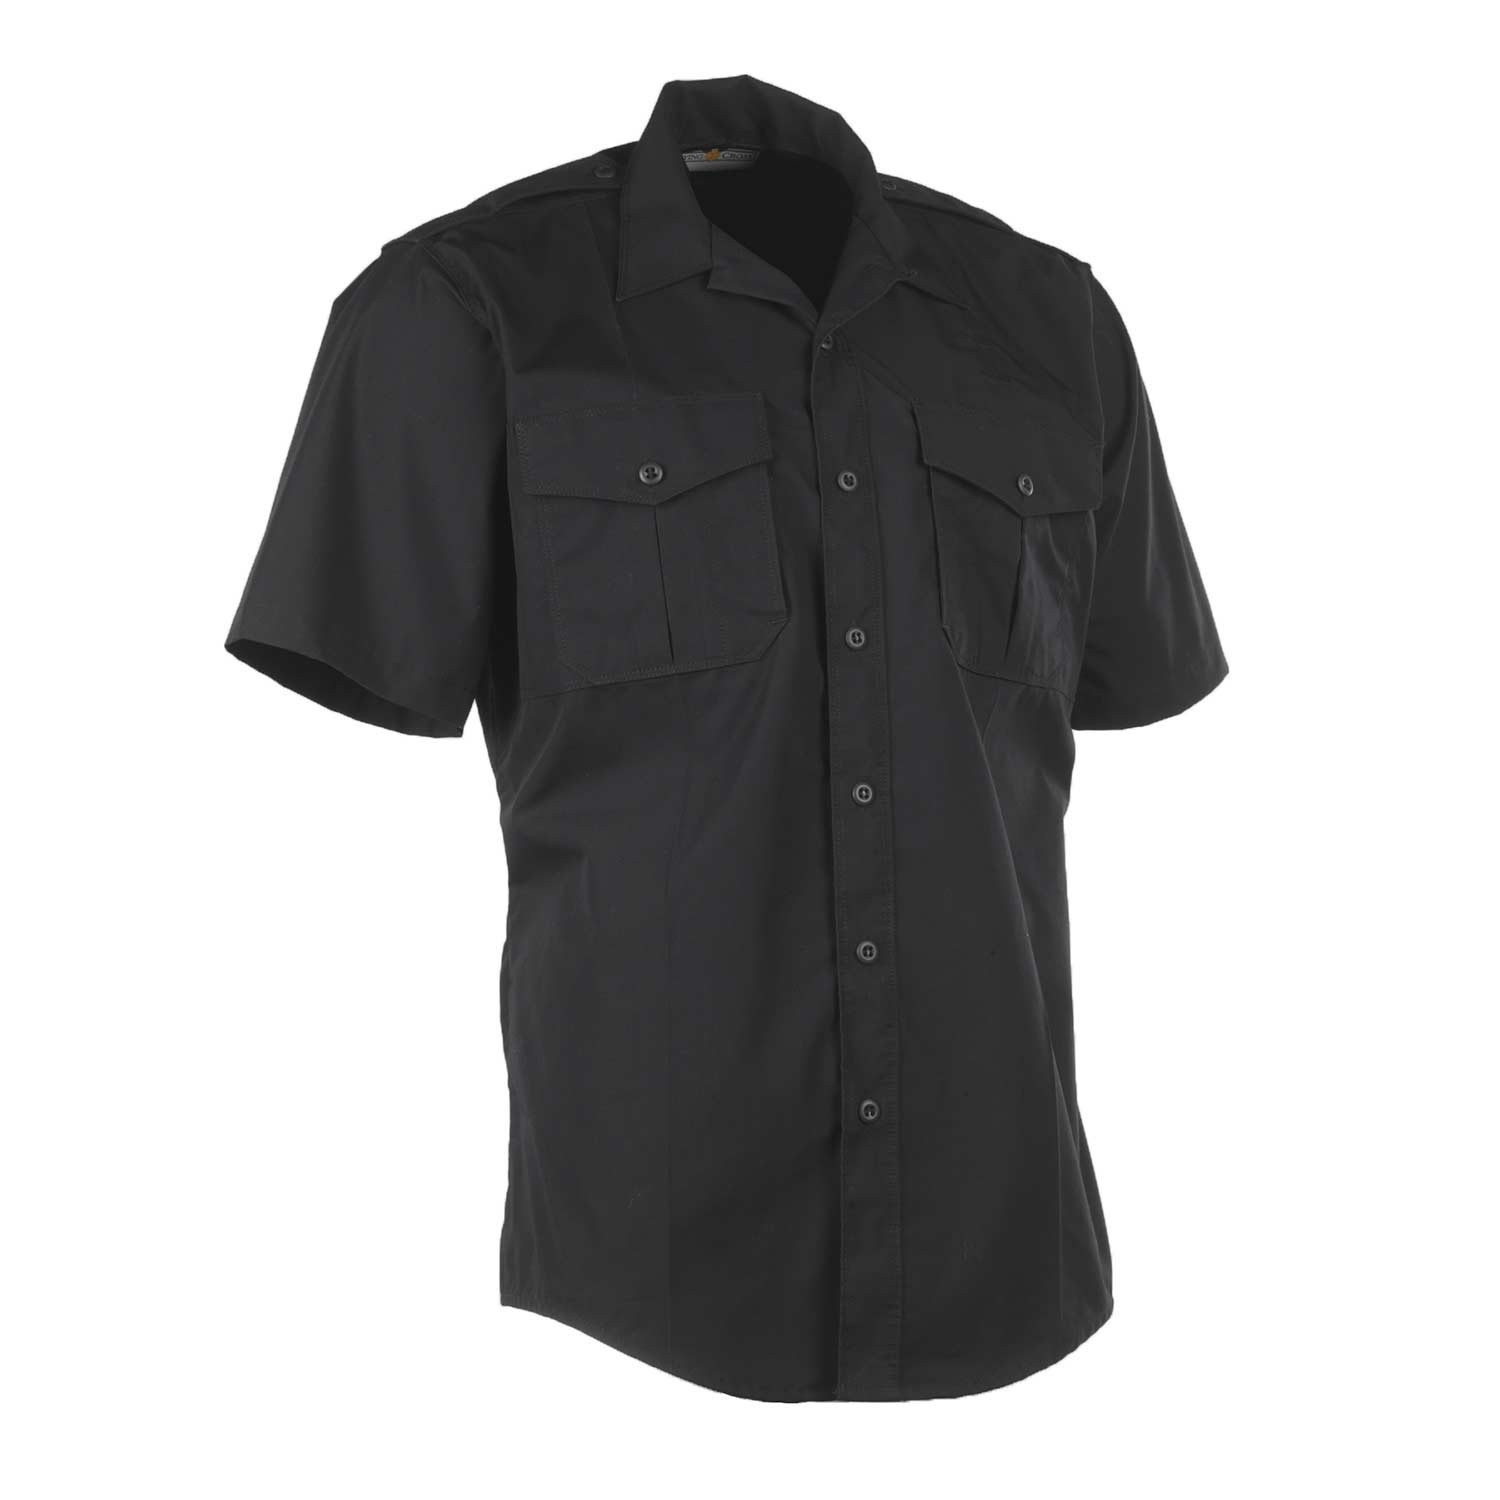 Cross Fx Elite Class B Style Short Sleeve Shirt by Flying Cr